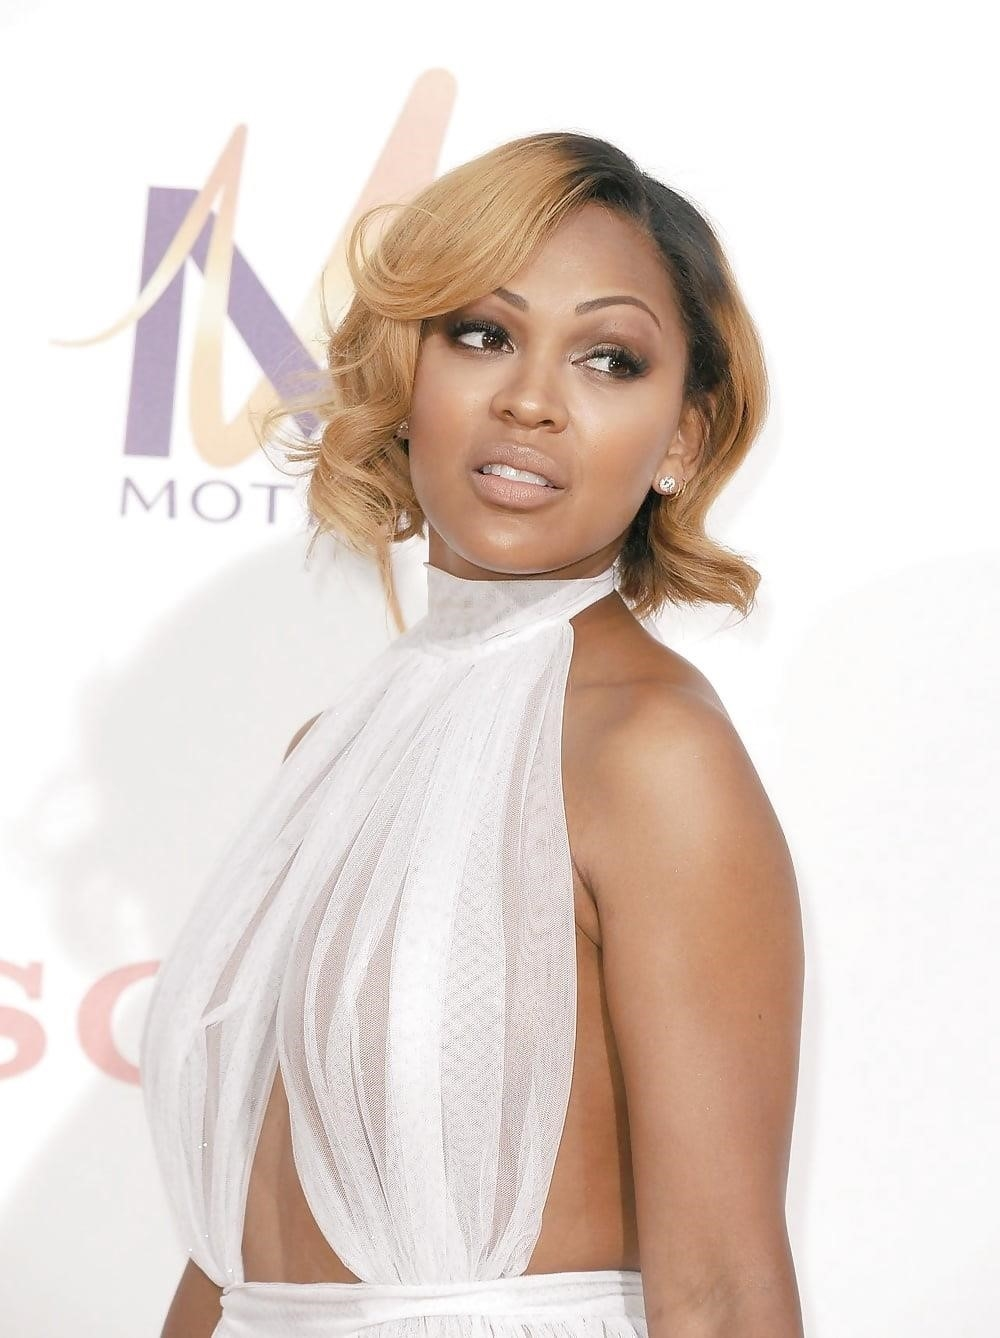 Meagan good nude pictures-5309